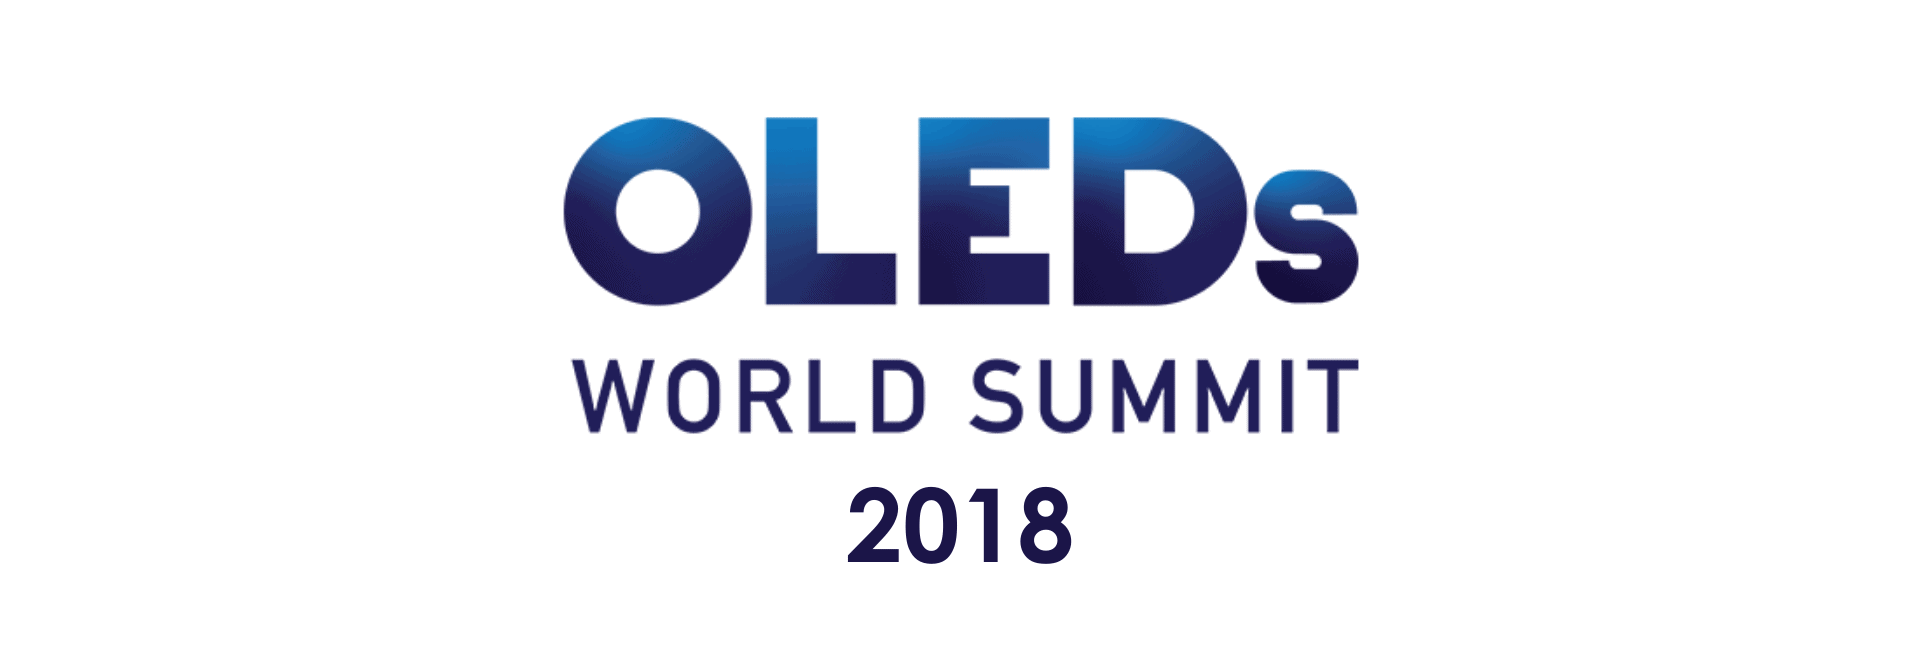 4 Key Take-aways from the 2018 OLEDs World Summit